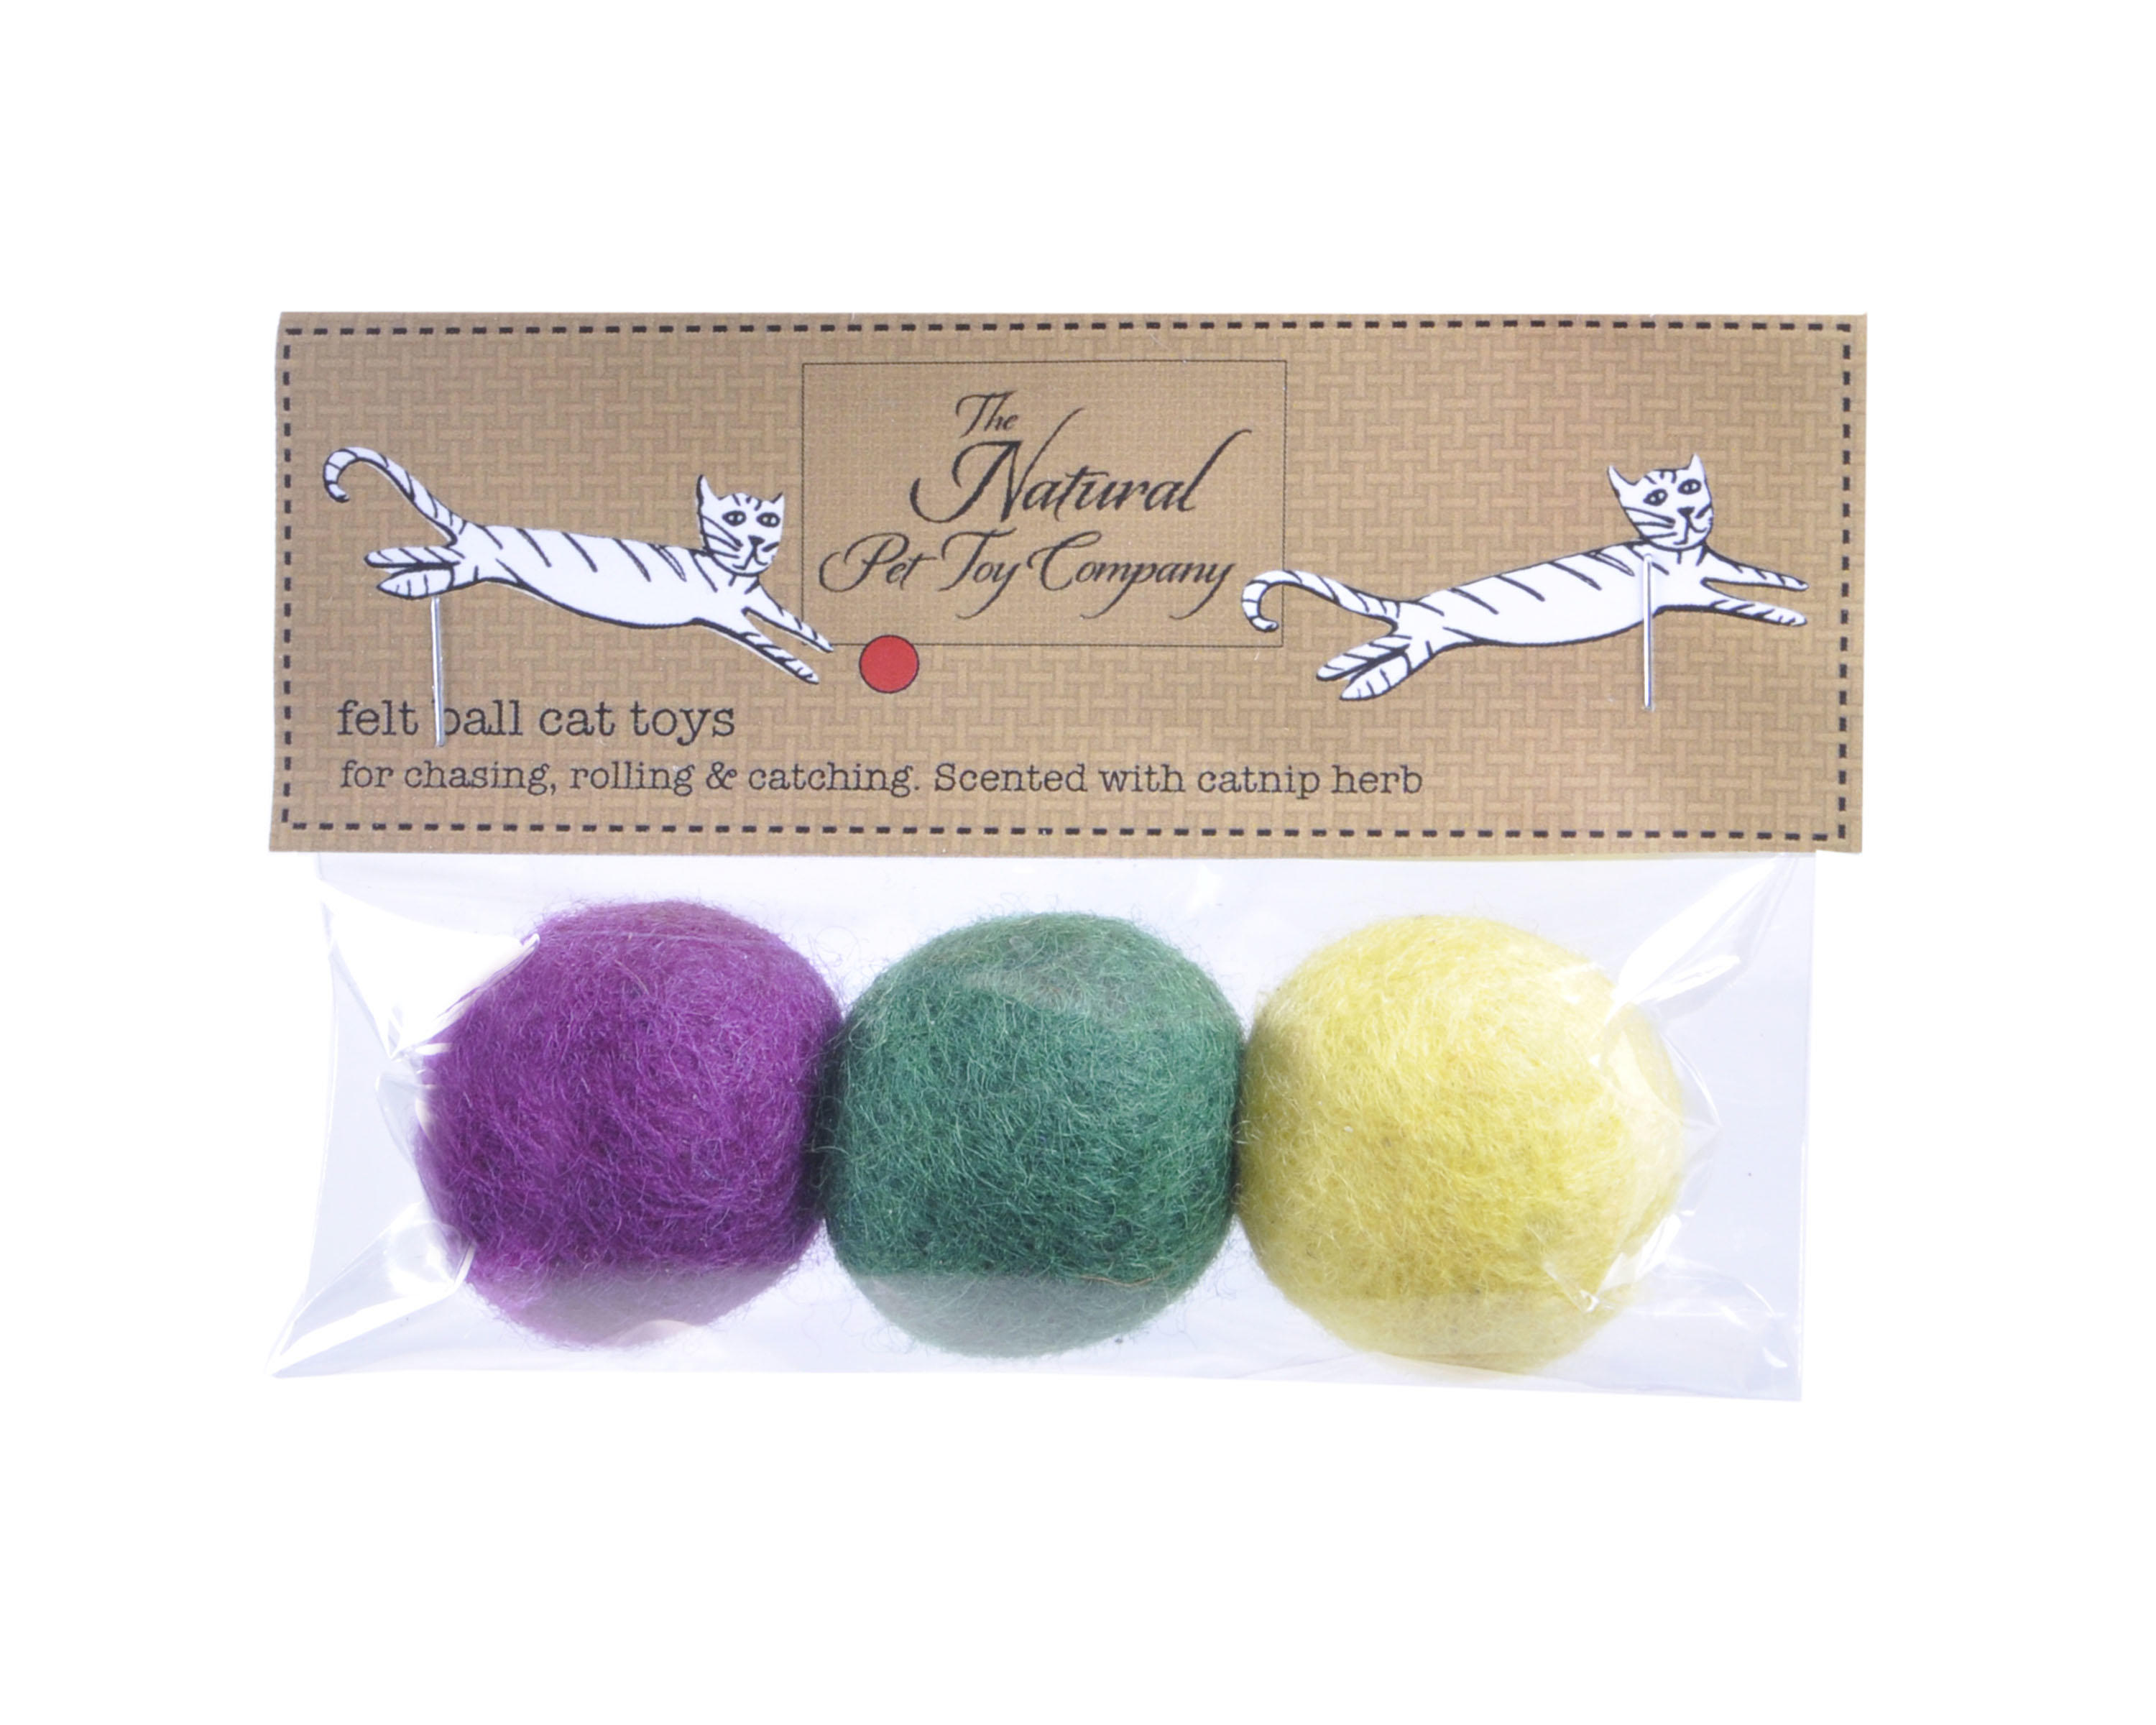 Felt ball cat toys in packaging